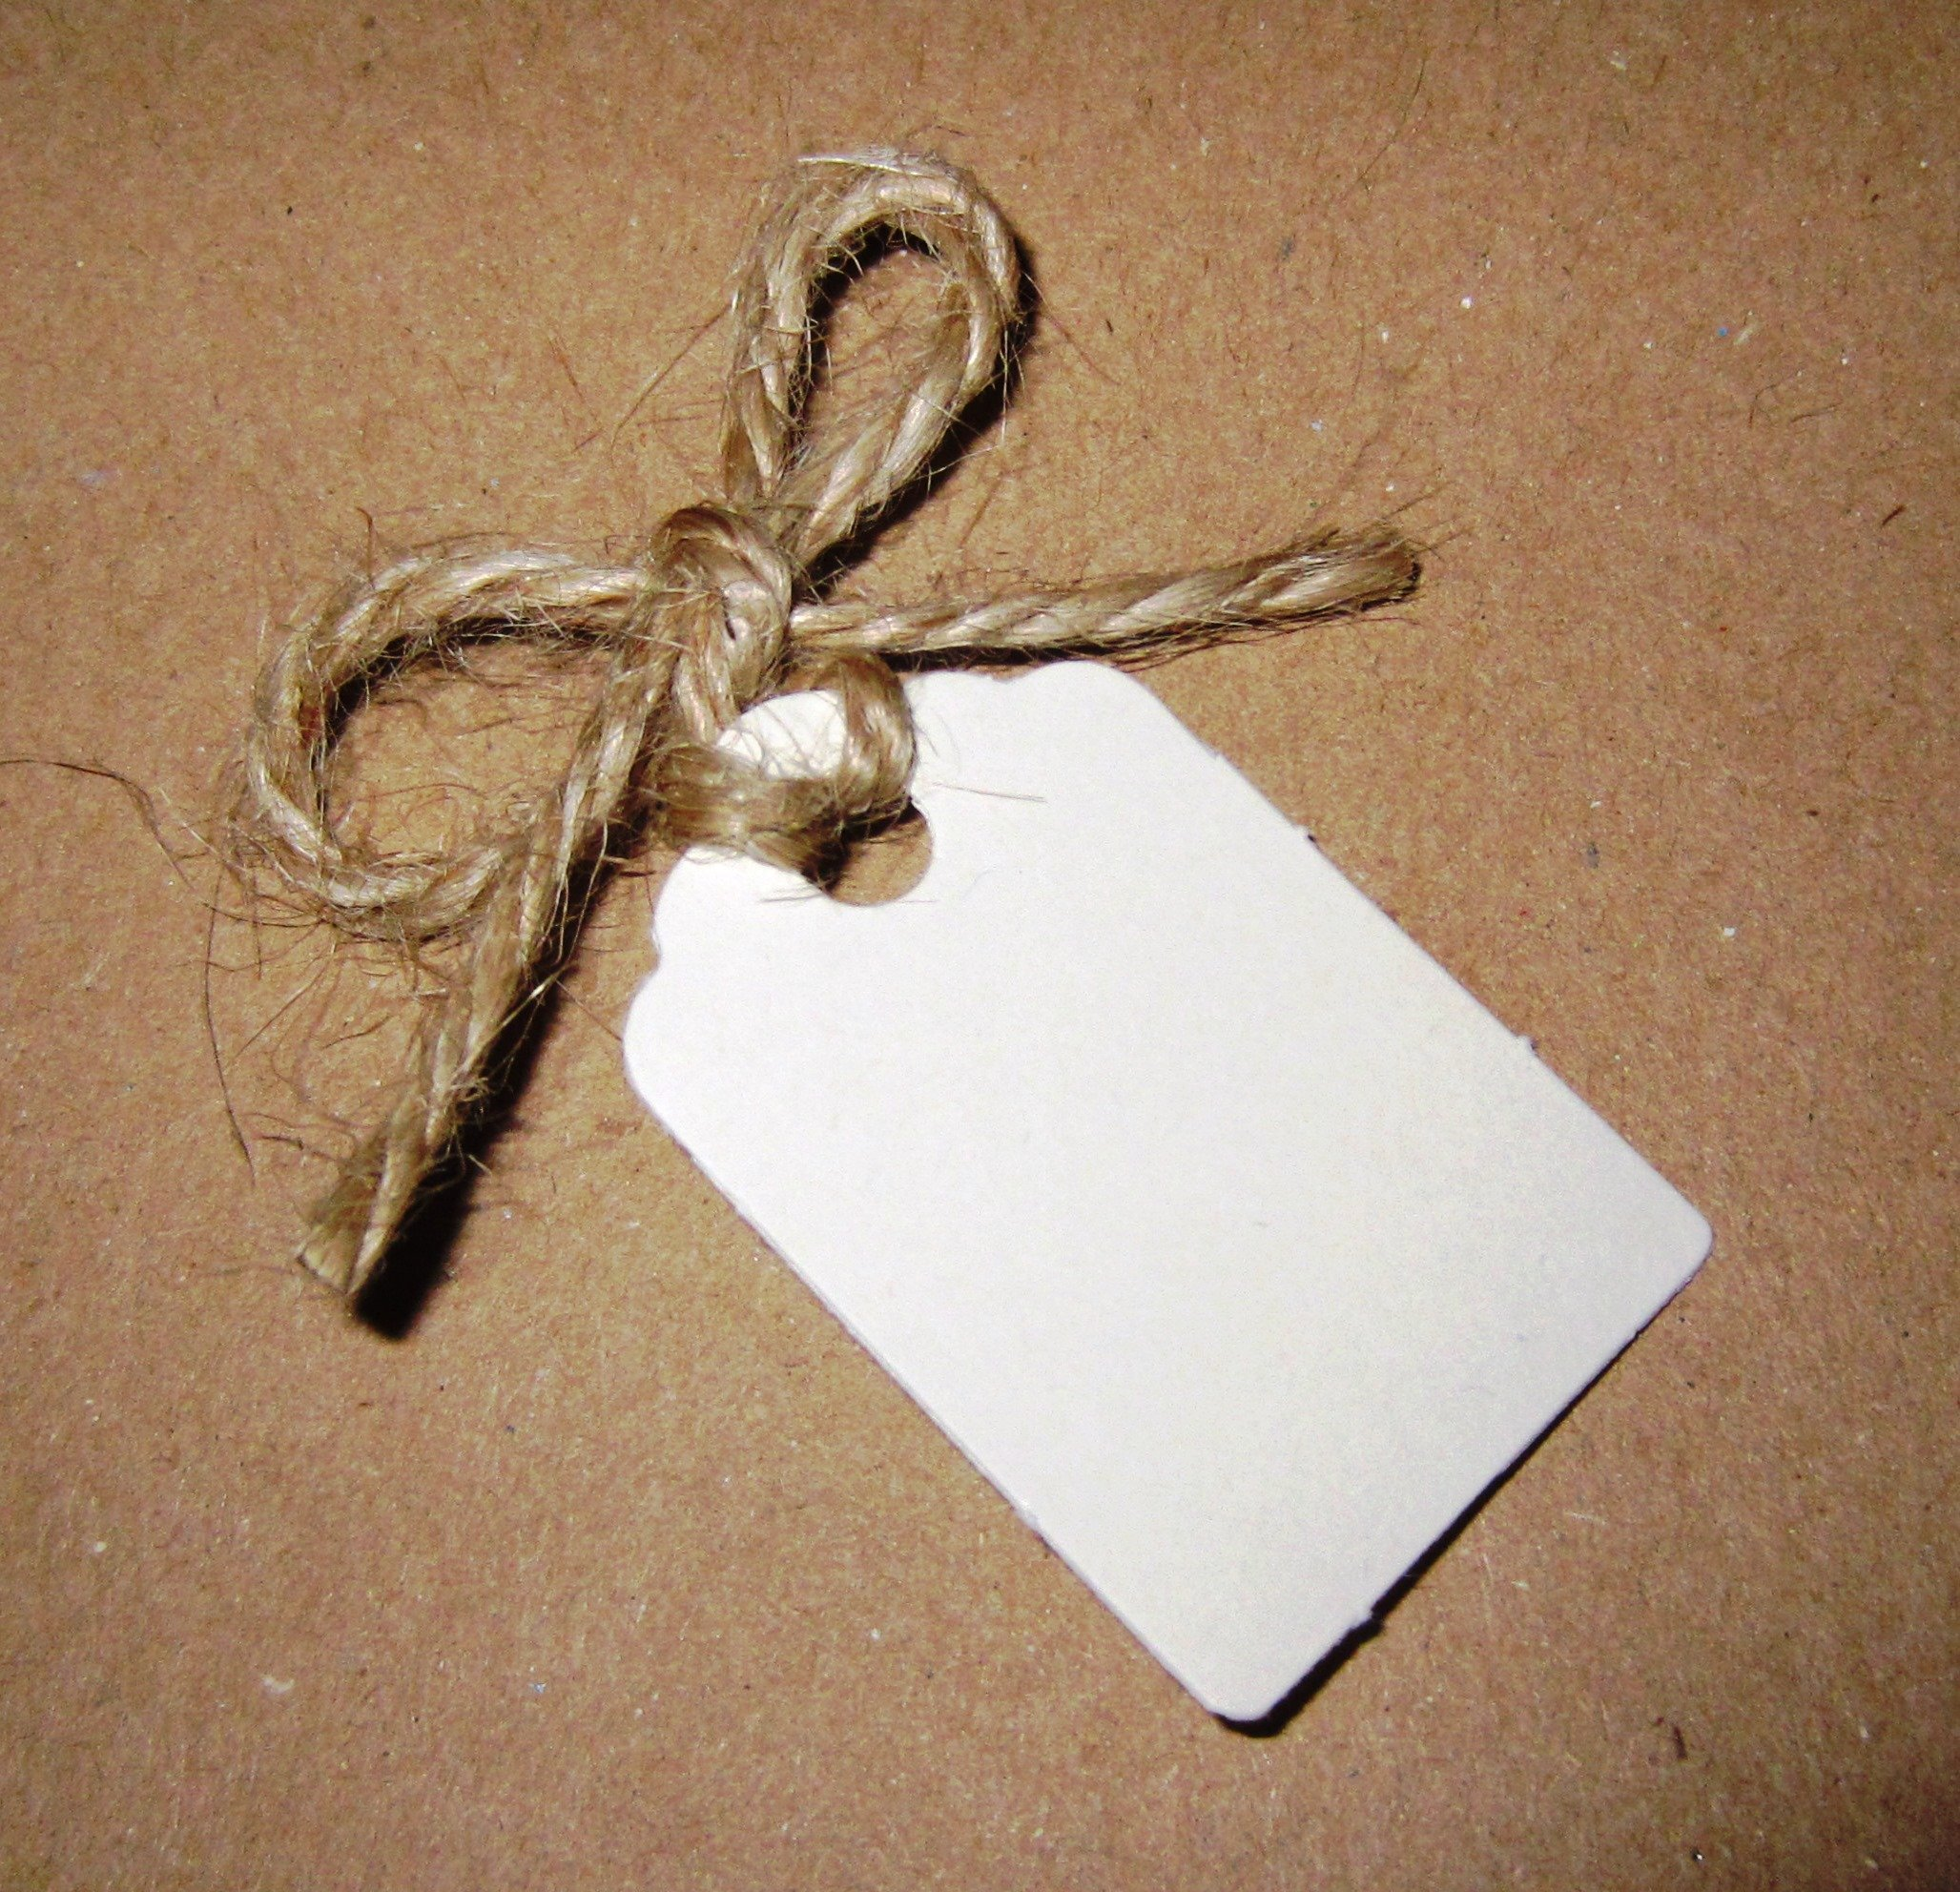 50 Small Ivory Gift Tags / Wedding Tags / Favor Tags with (12 Metres Uncut) Natural Jute Twine 42mm x 28mm (100% Recycled Card)